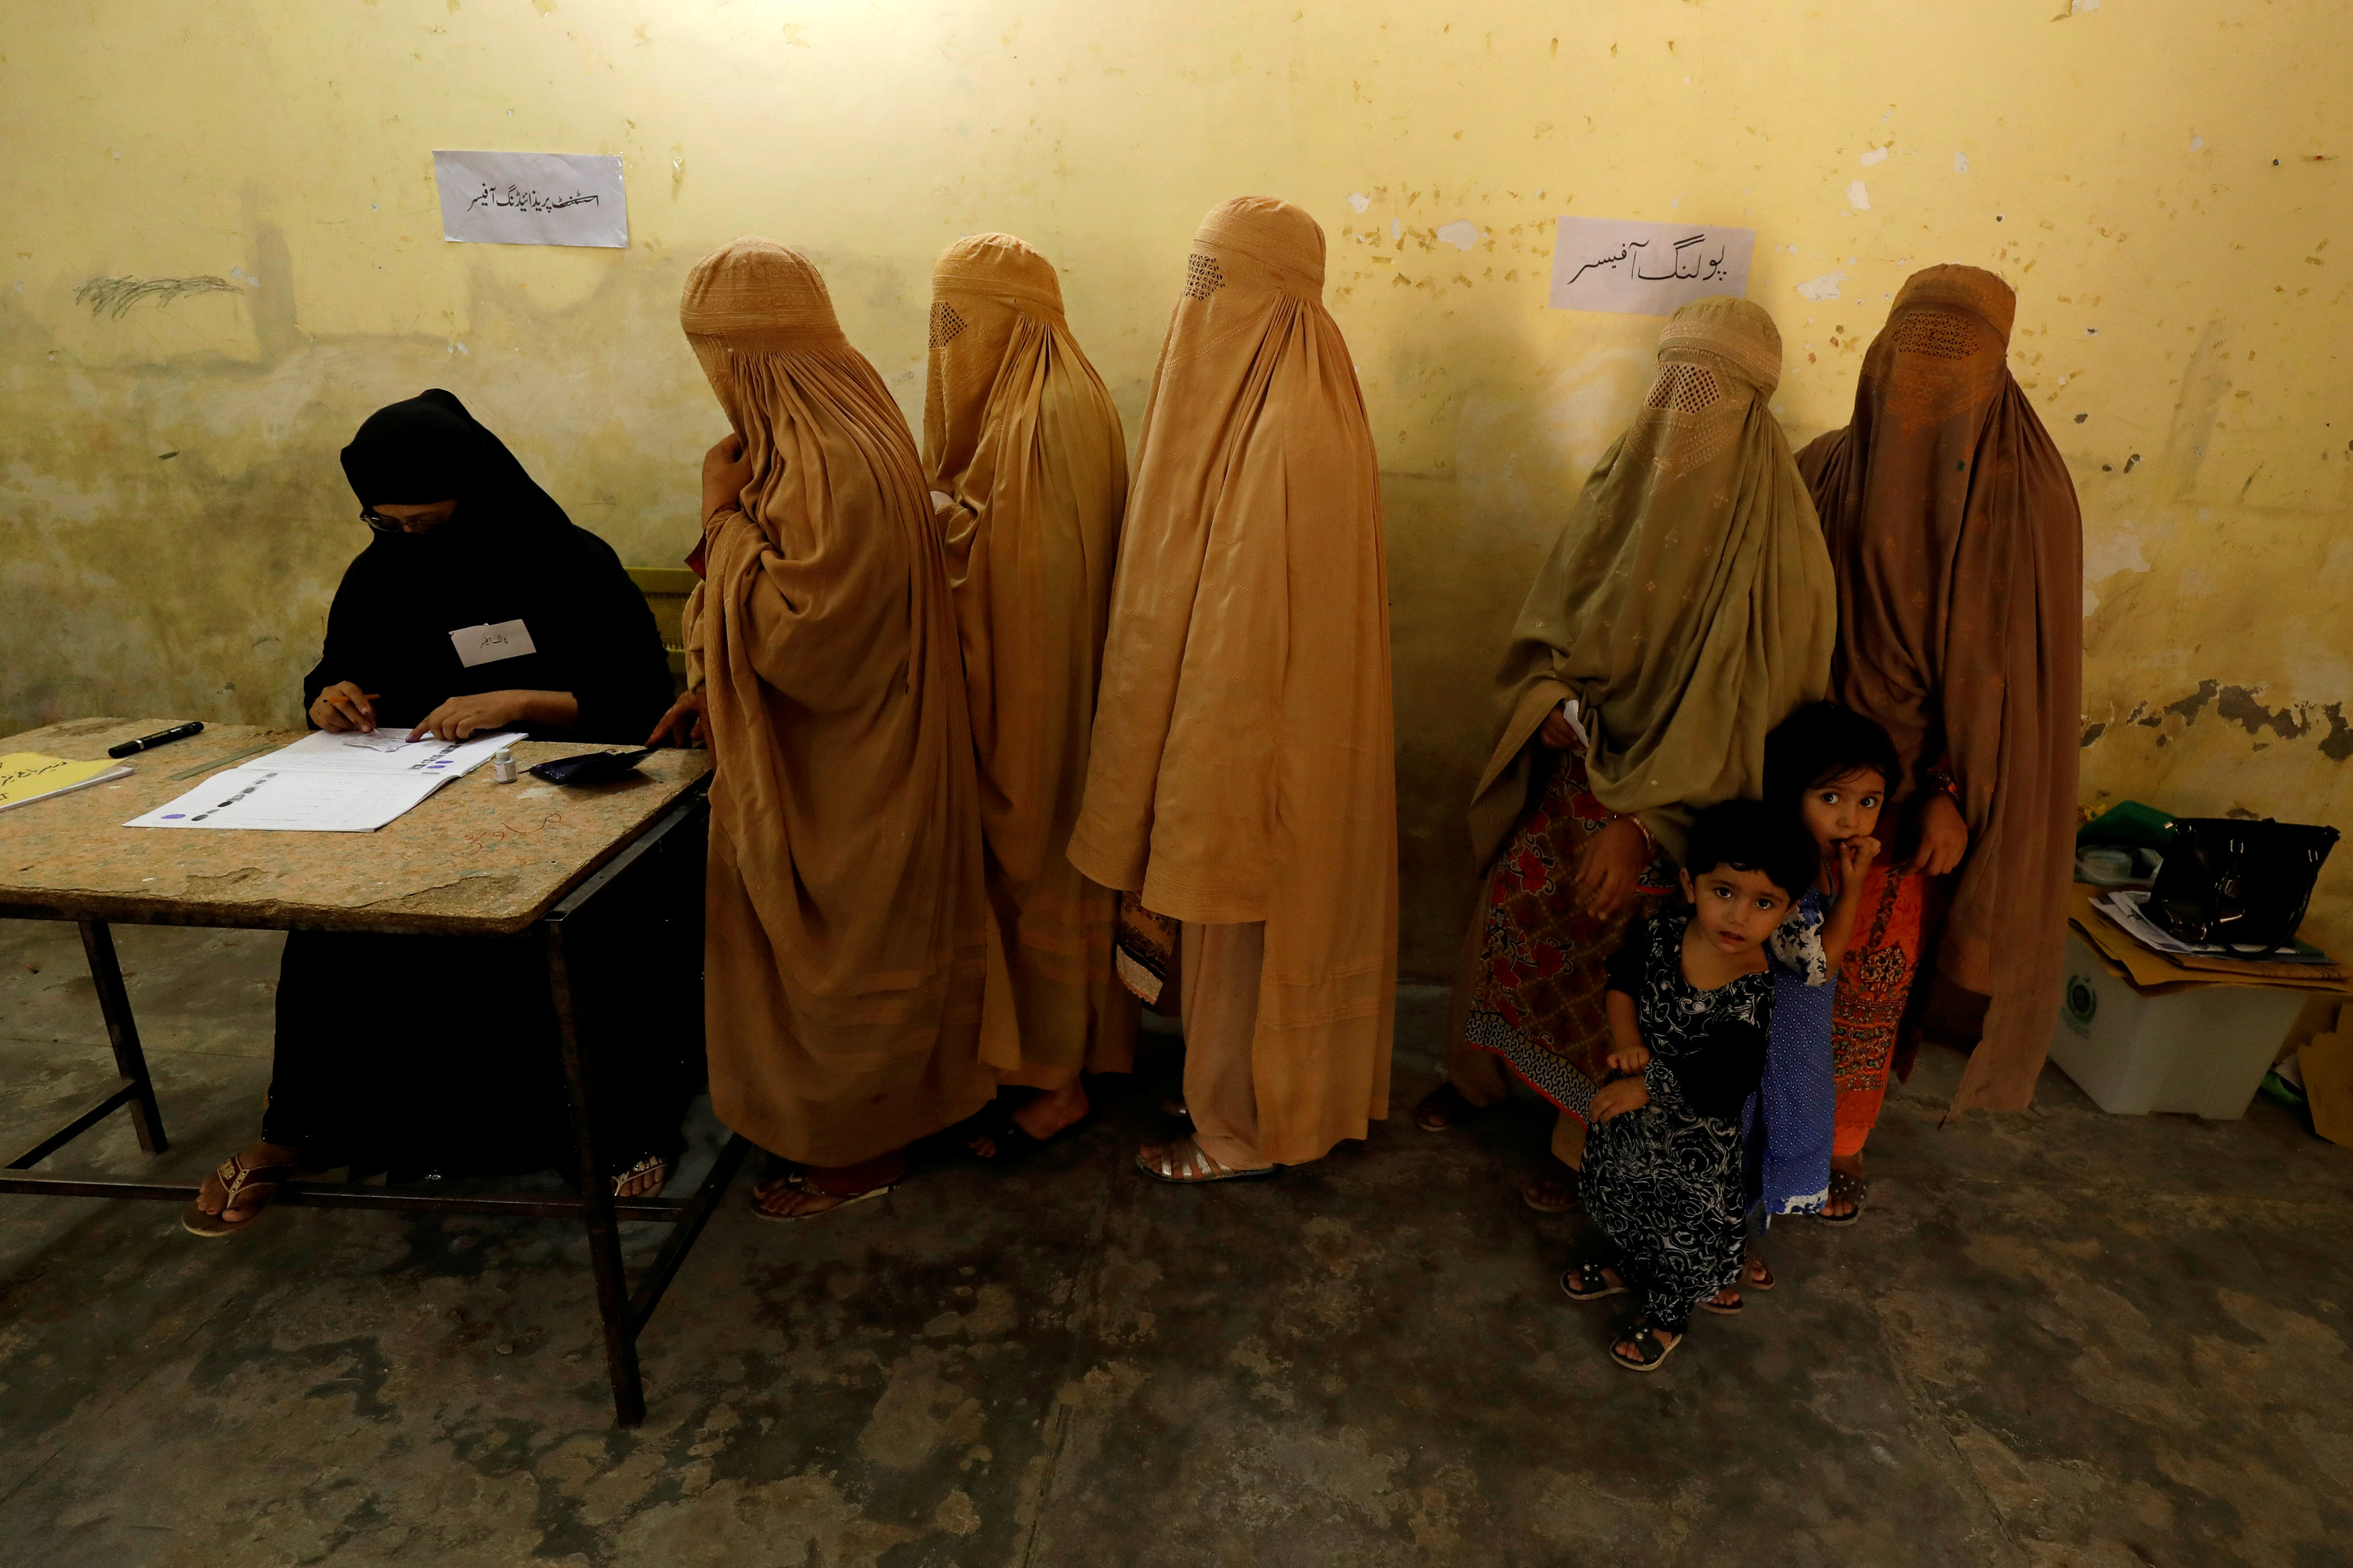 Women, clad in burqas, stand in line to cast their ballot at a polling station during general election in Peshawar, Pakistan July 25, 2018. REUTERS/Fayaz Aziz